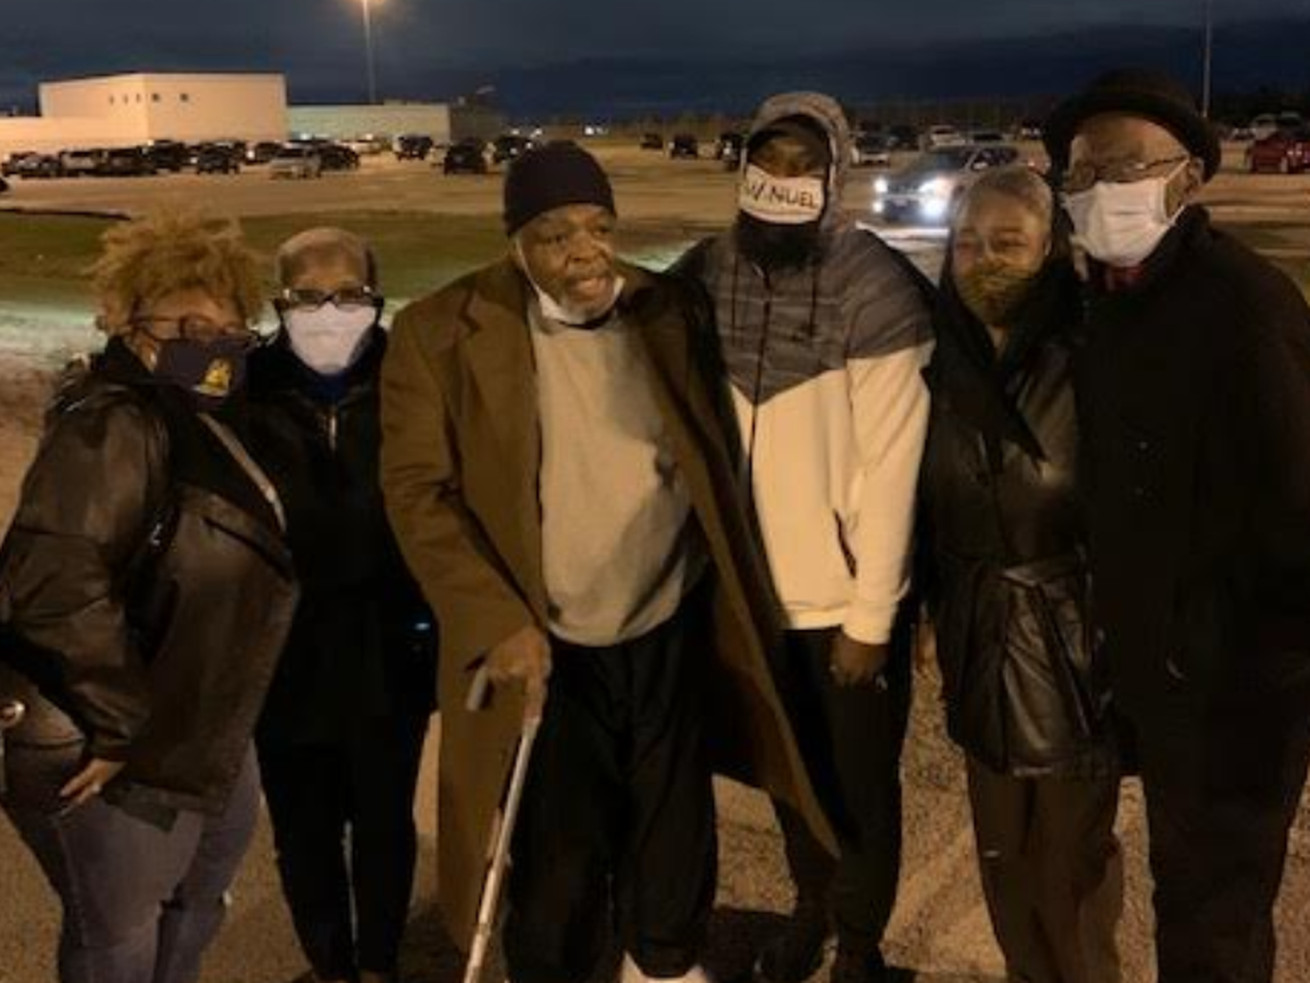 Torture victim Robert Smith, who served 33 years in prison for a double murder he did not commit, was released from prison Oct. 23. Provided photo